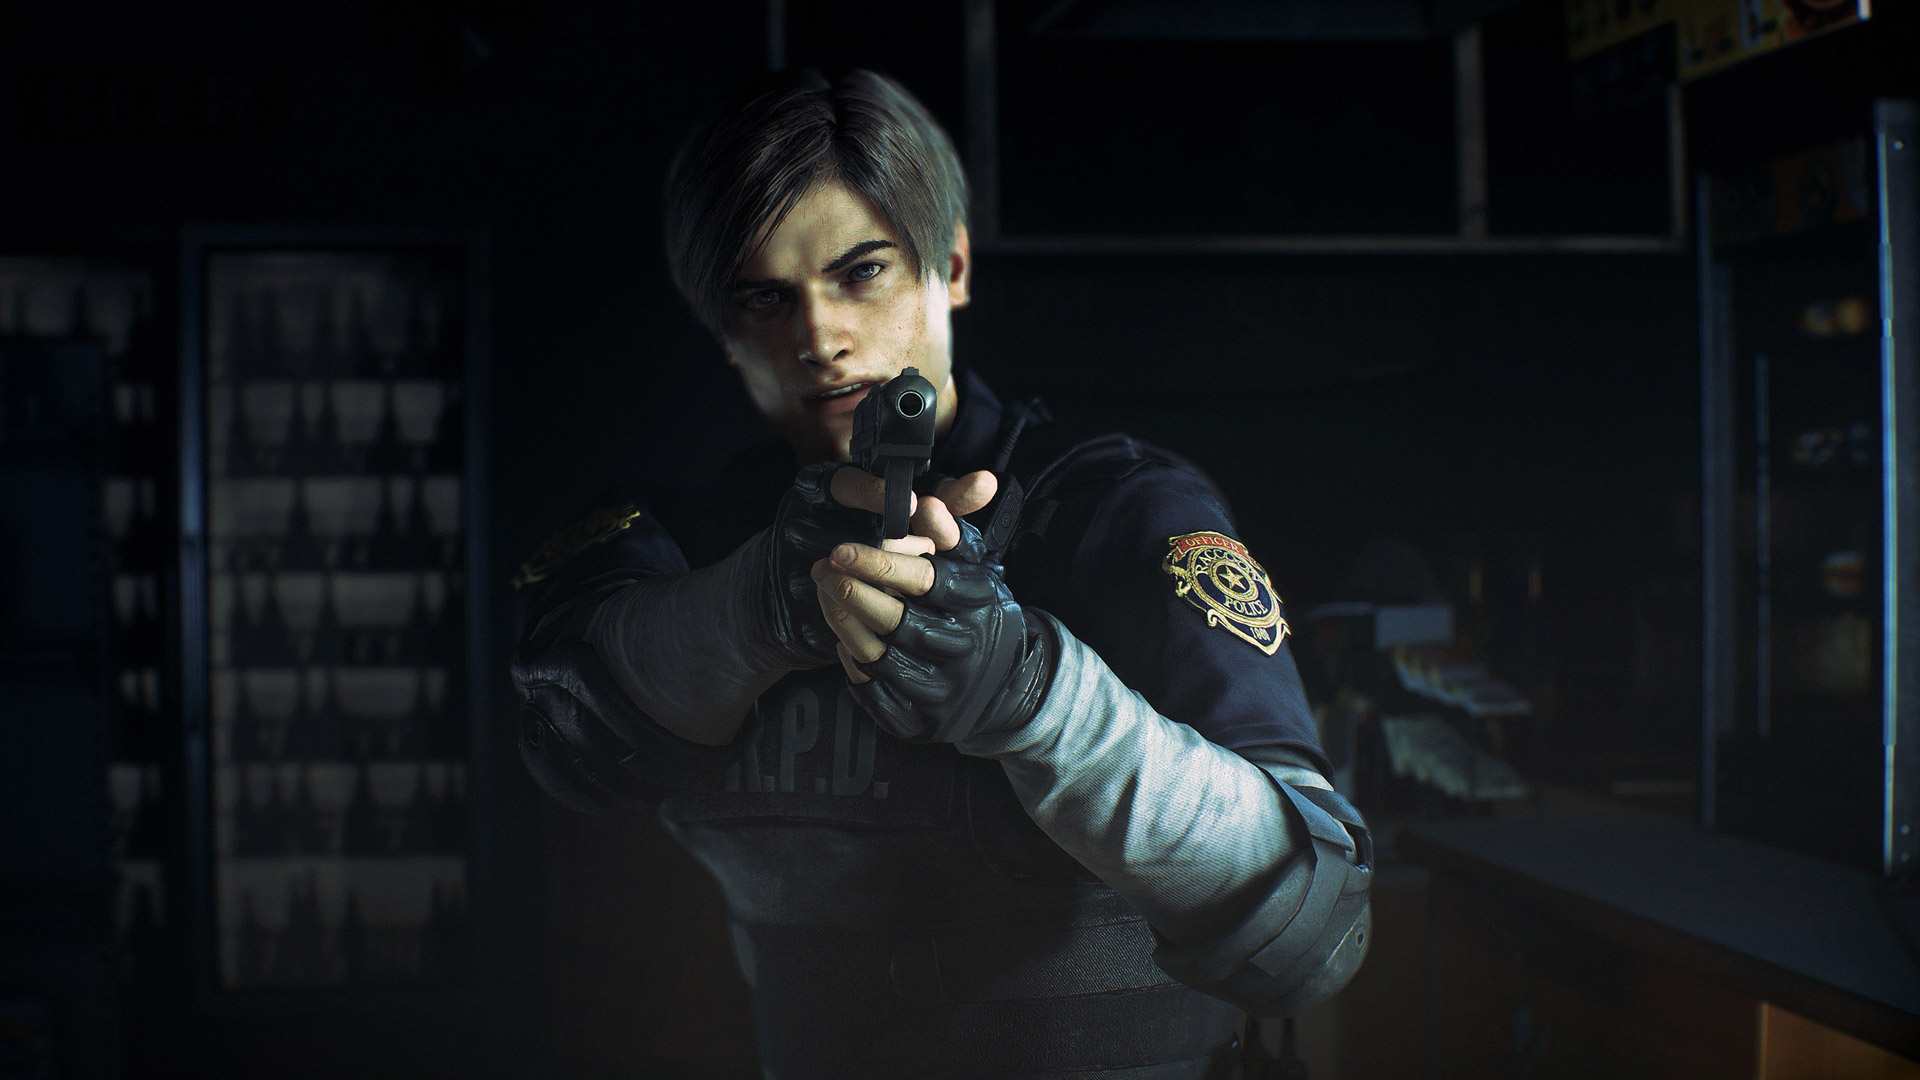 Free Resident Evil 2 Wallpaper in 1920x1080